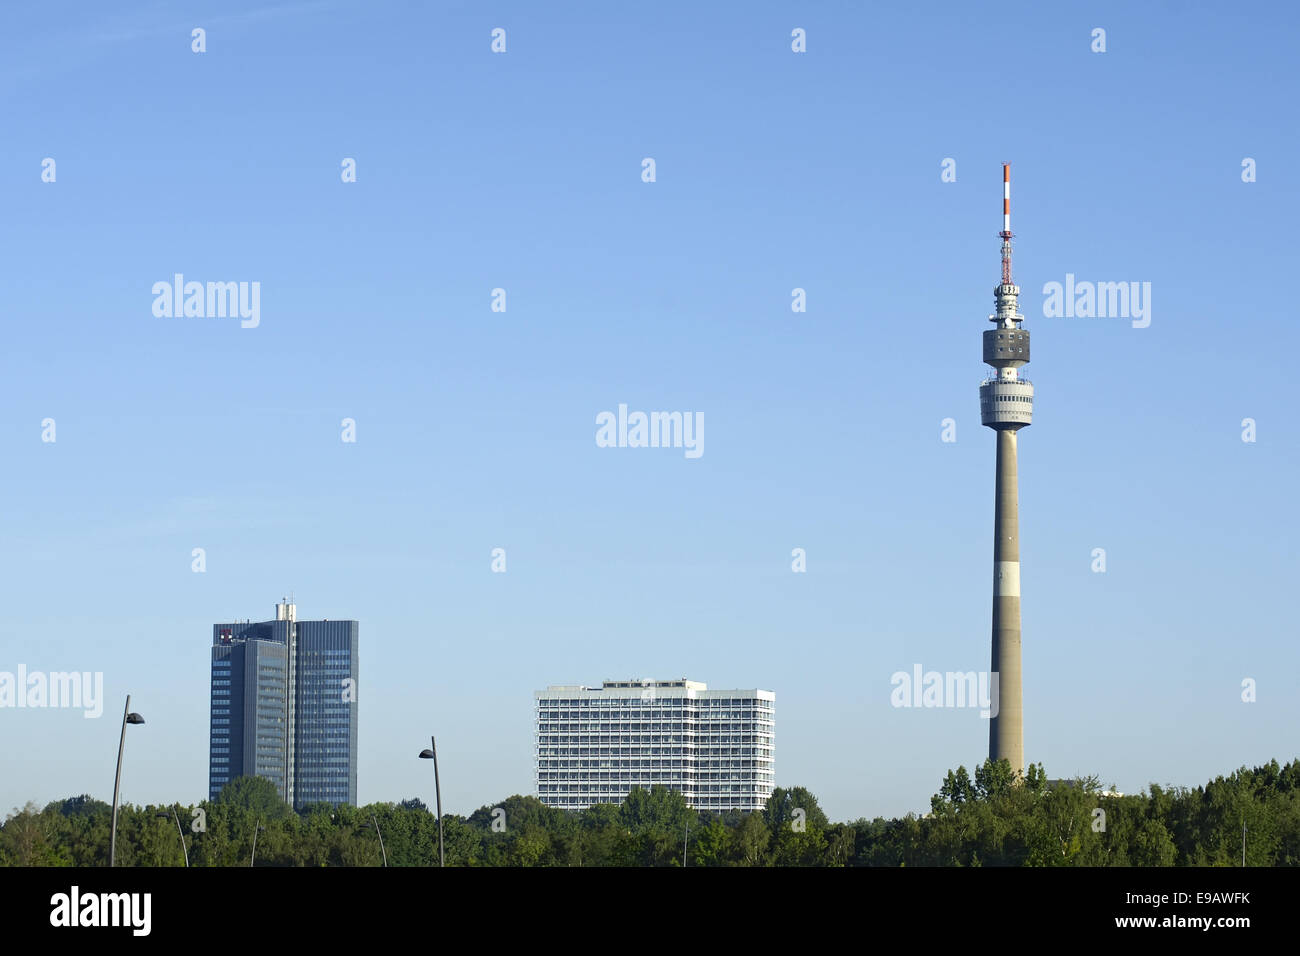 Skyline Dortmund, Germany Stock Photo